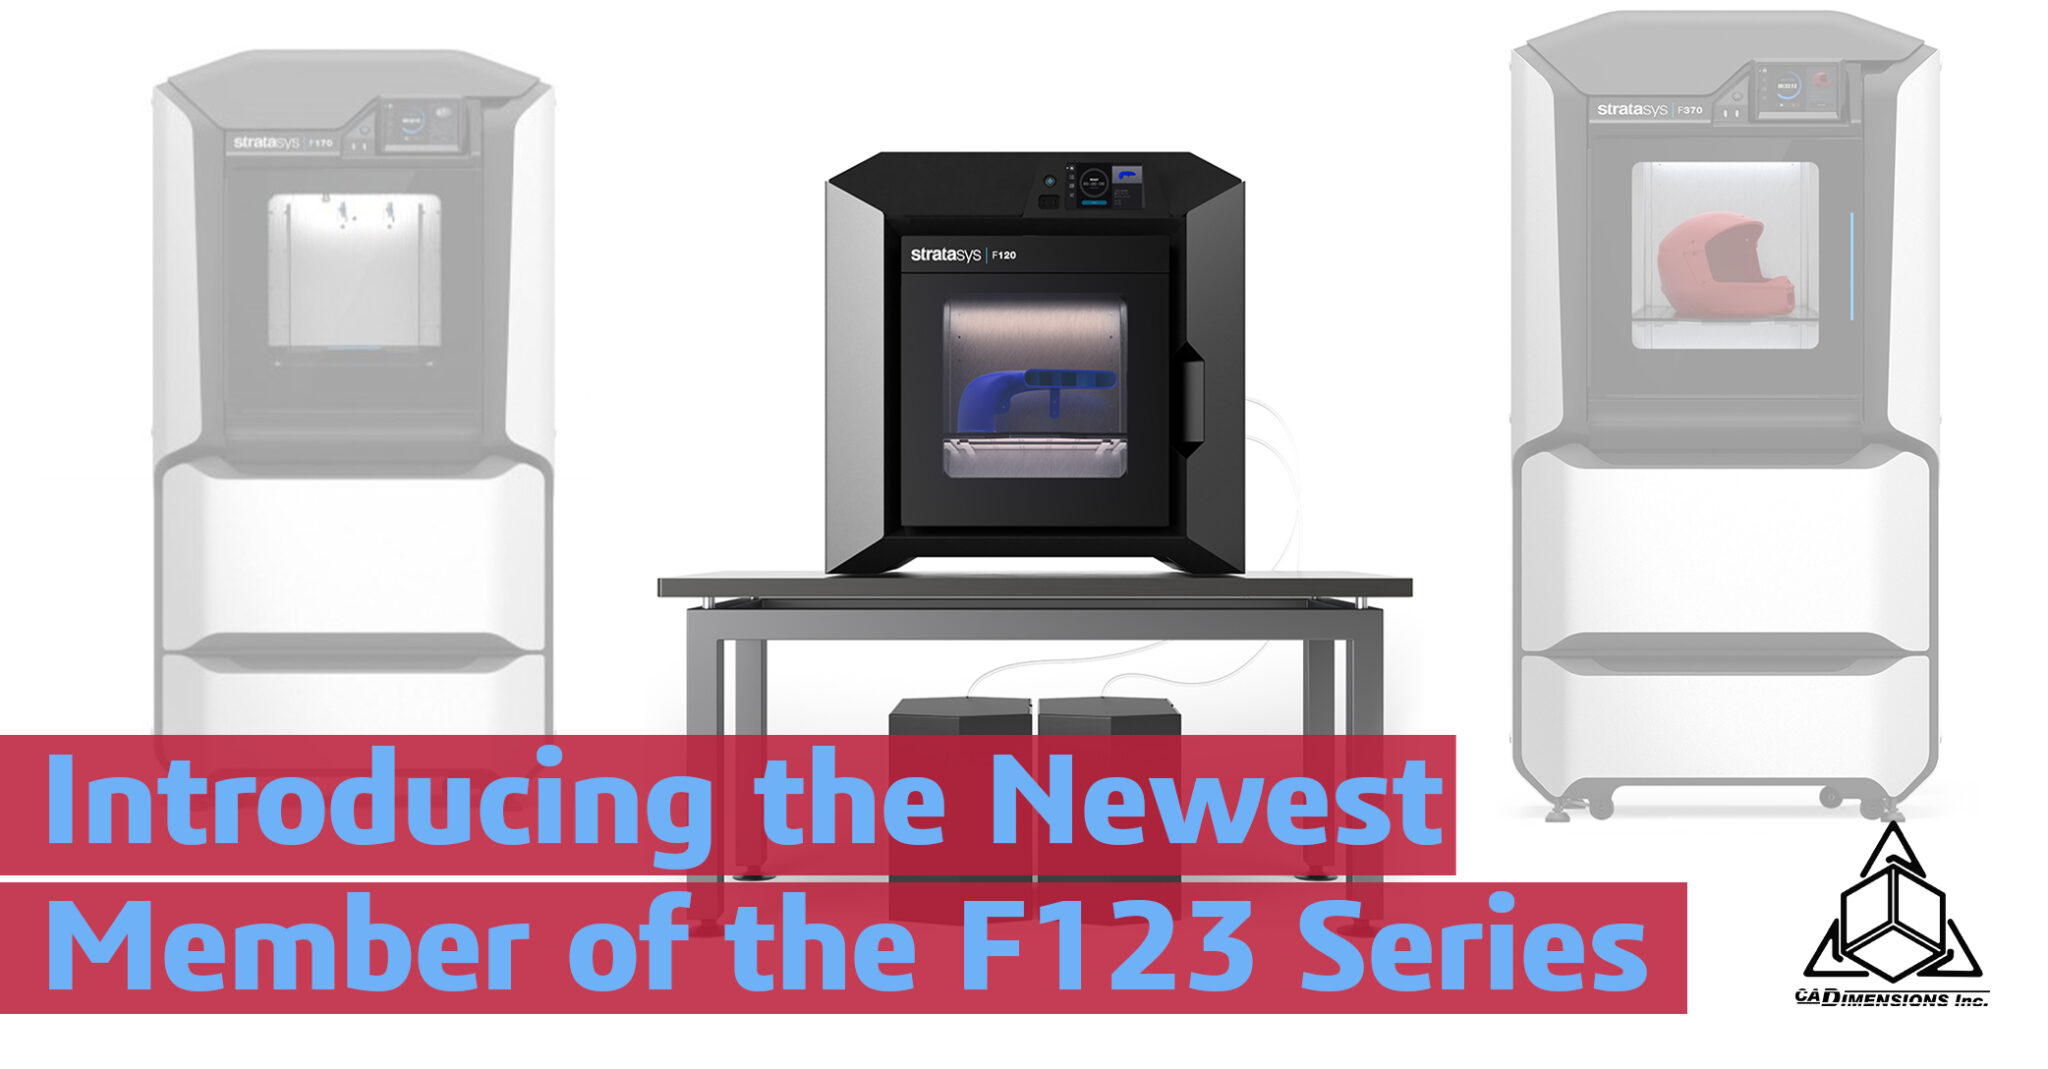 introducing the newest fseries printer - stratasys f120 cadimensions